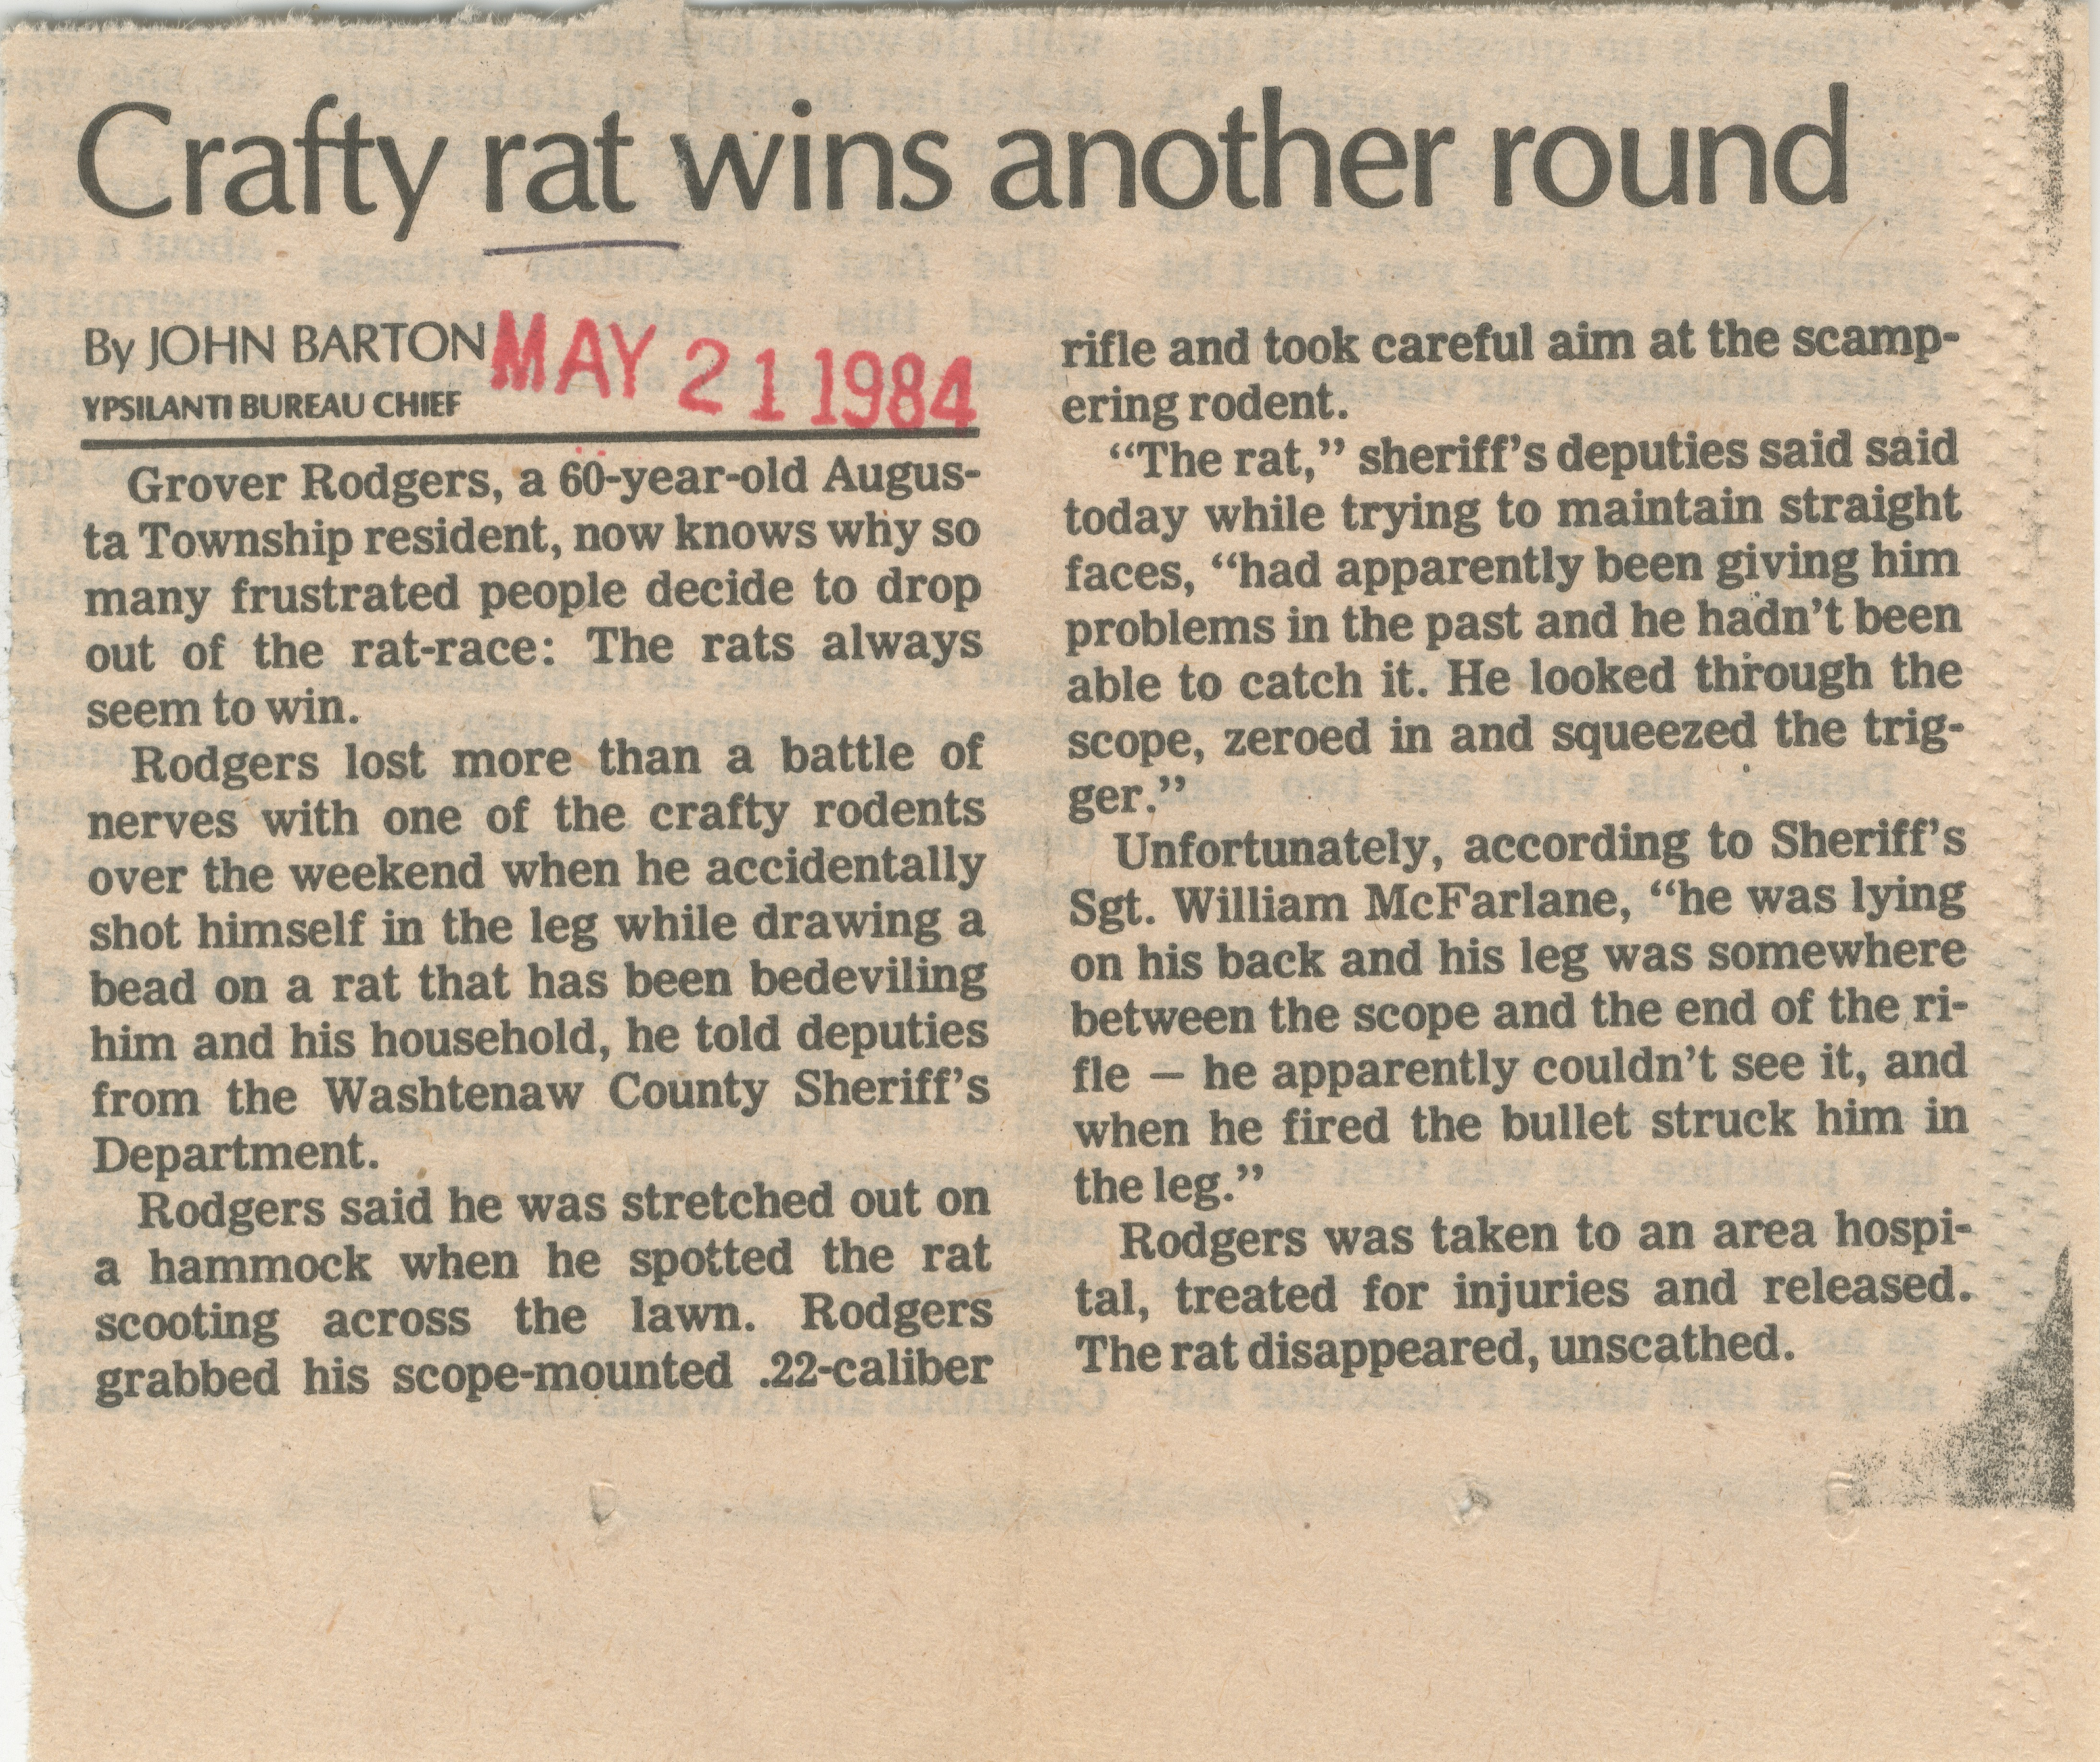 Crafty Rat Wins Another Round  image